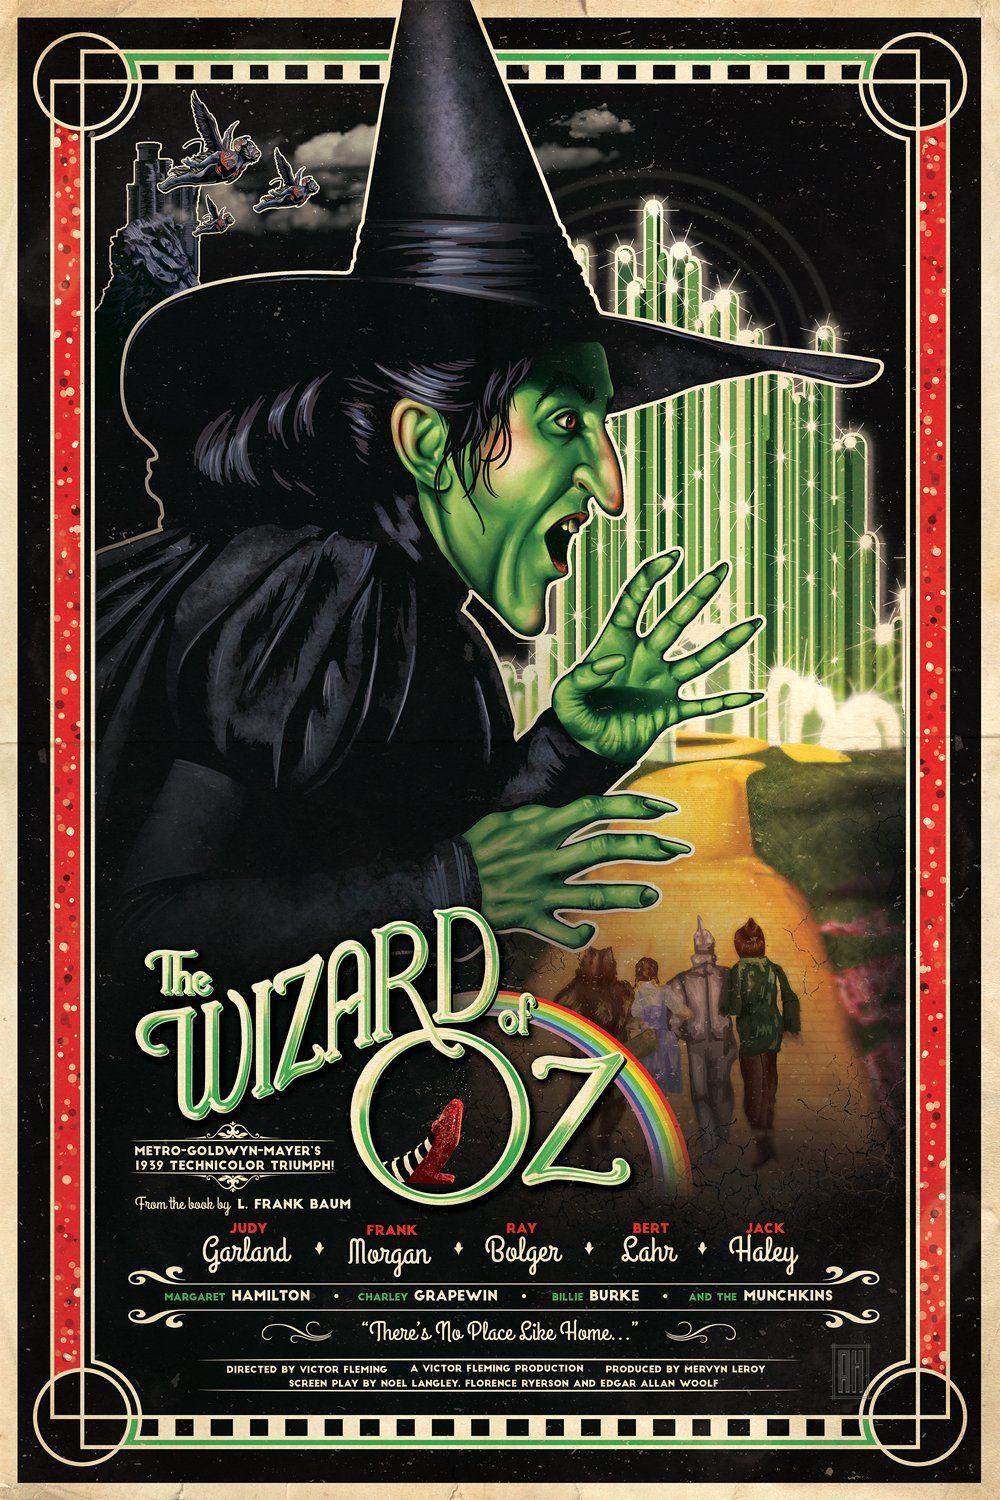 The wizard of oz 1939 hd wallpaper from movie posters pinterest movie - The wizard of oz hd ...